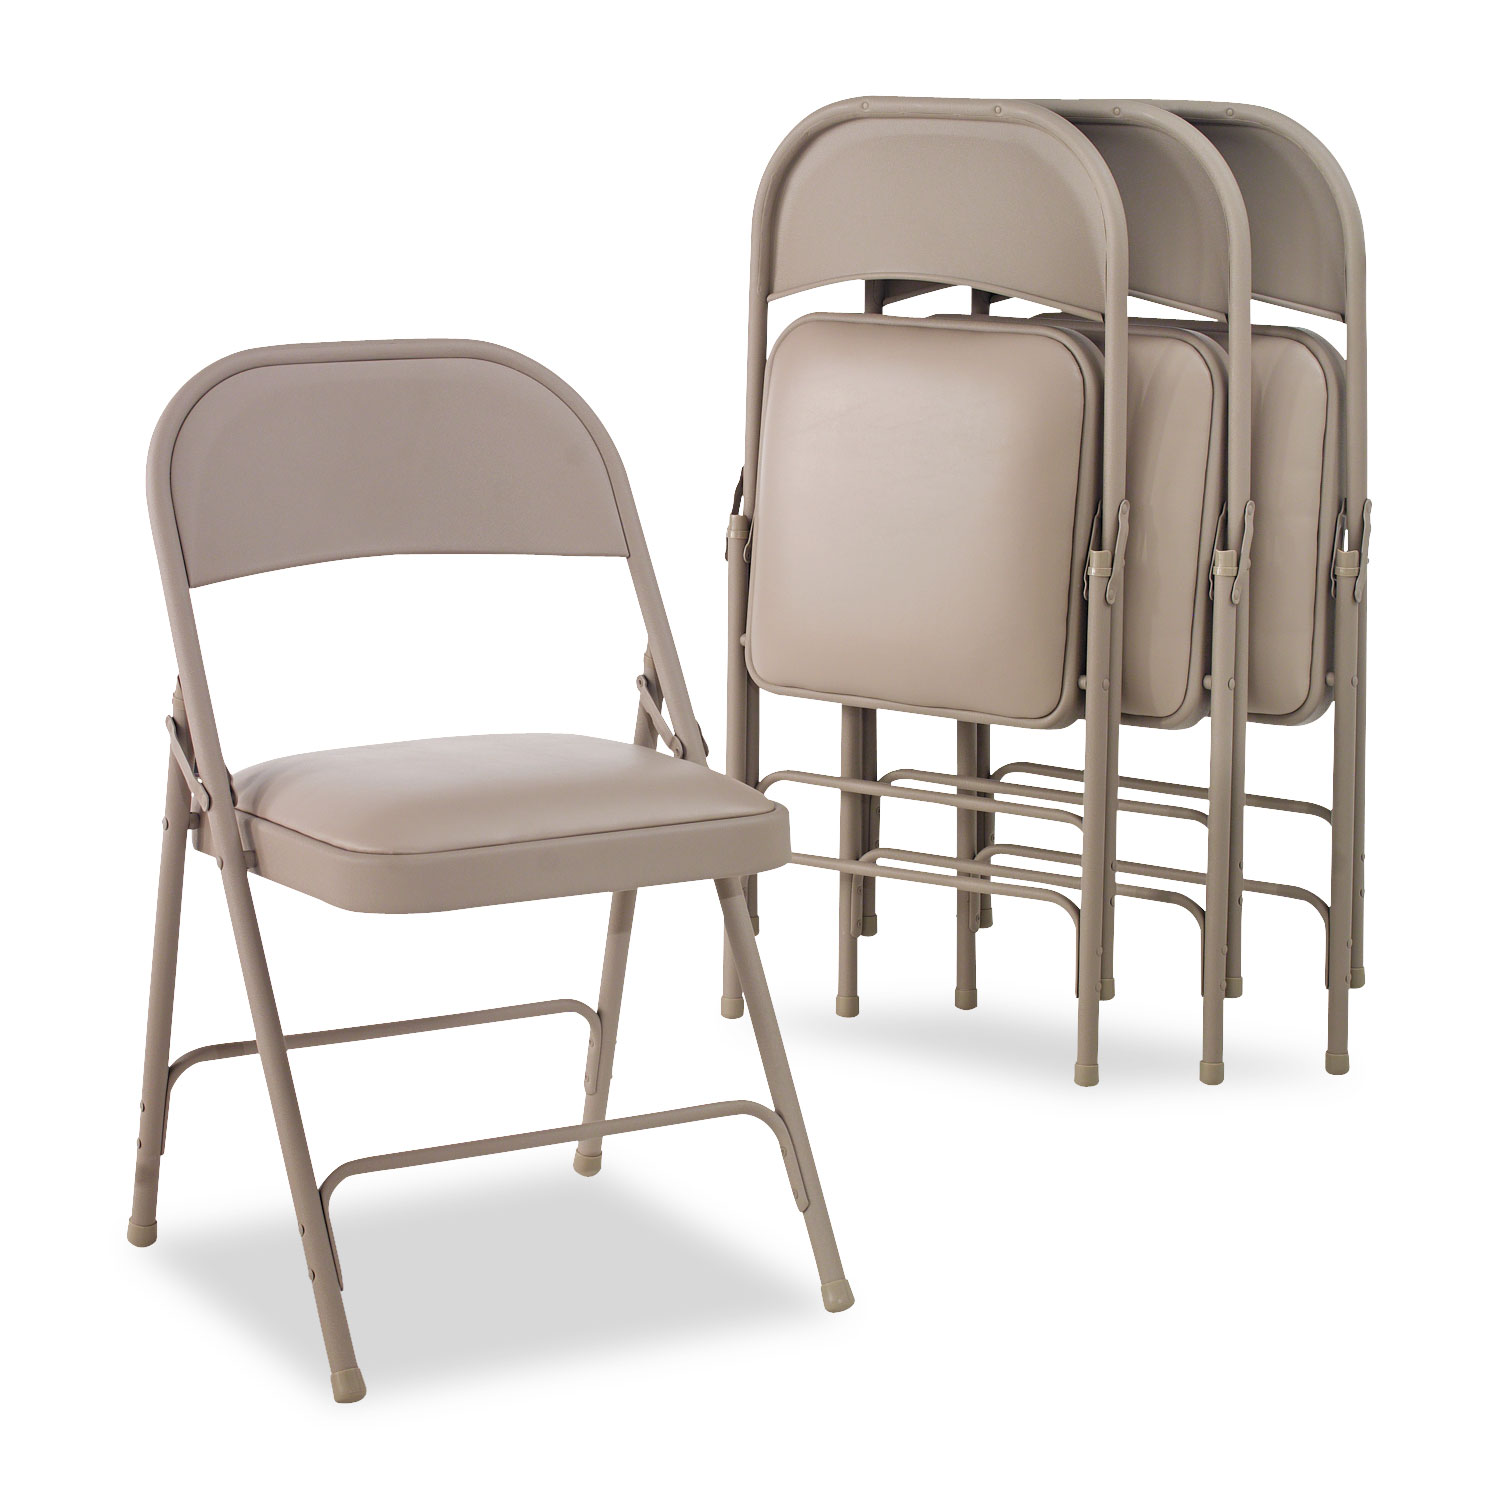 Chairs Folding Steel Folding Chair With Two Brace Support Padded Seat Tan 4